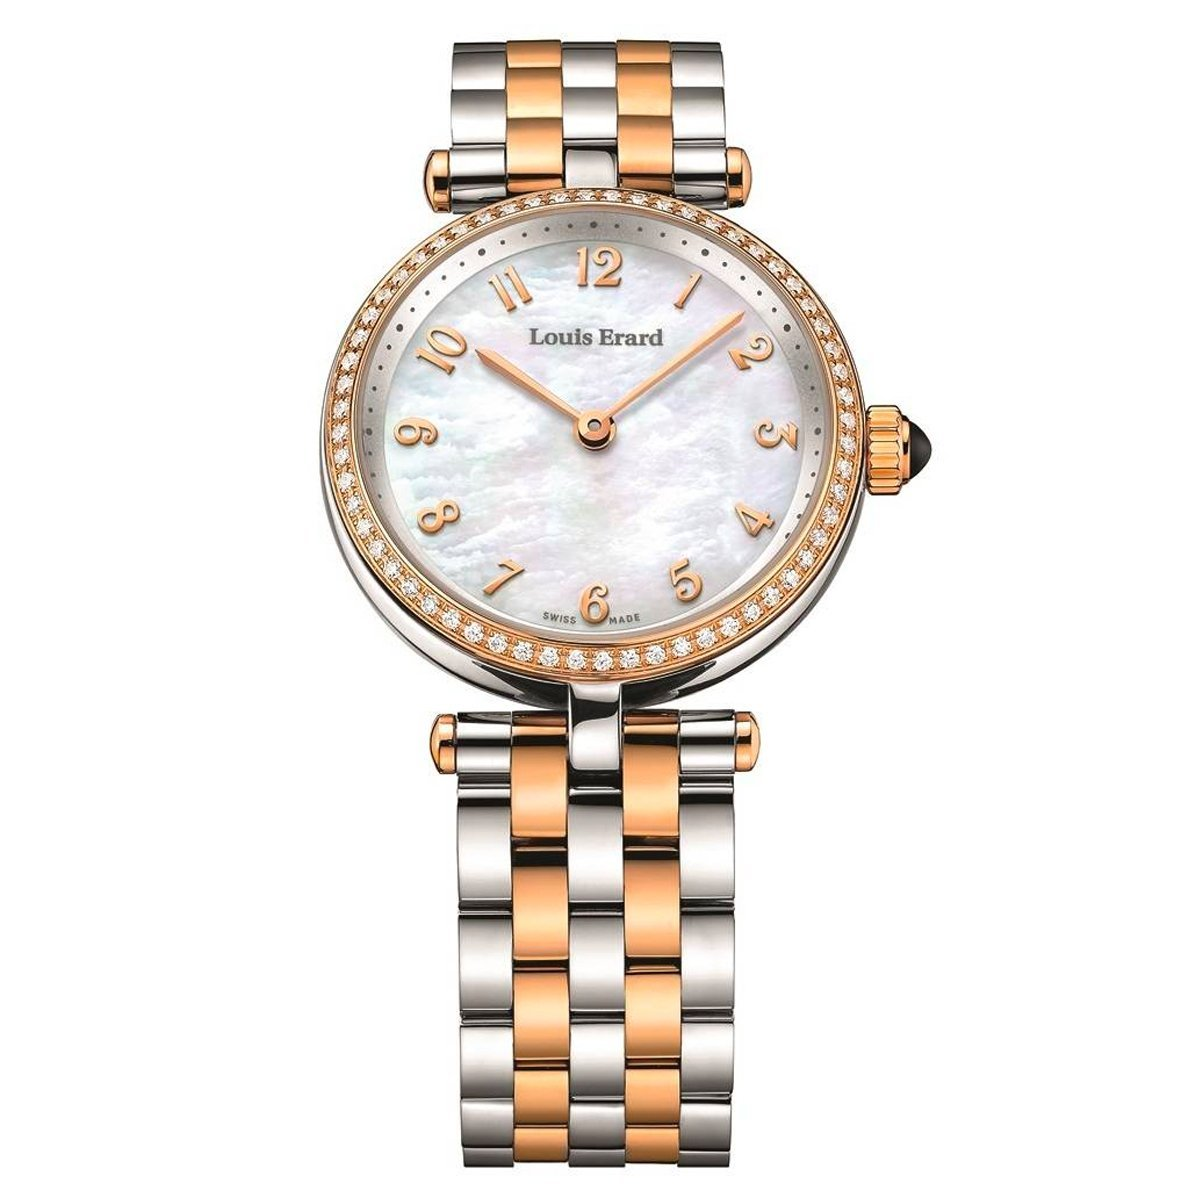 Louis Erard Romance Mother of Pearl Diamonds - Watches & Crystals